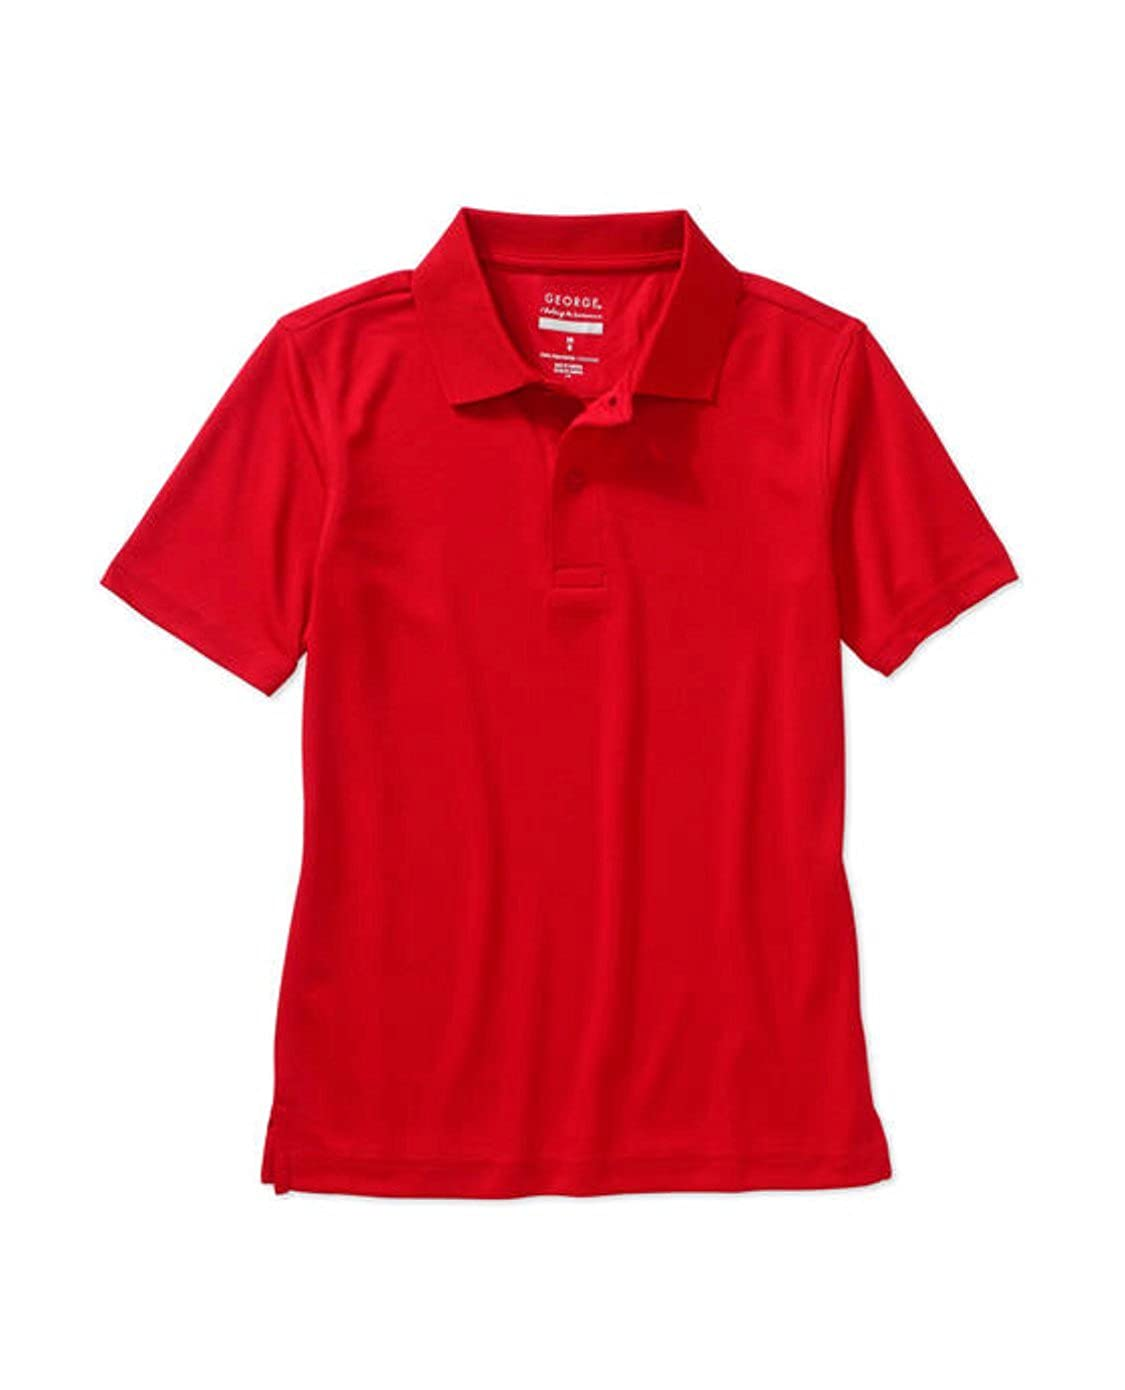 George Boys School Uniform - Short Sleeve Performance Polo Shirt